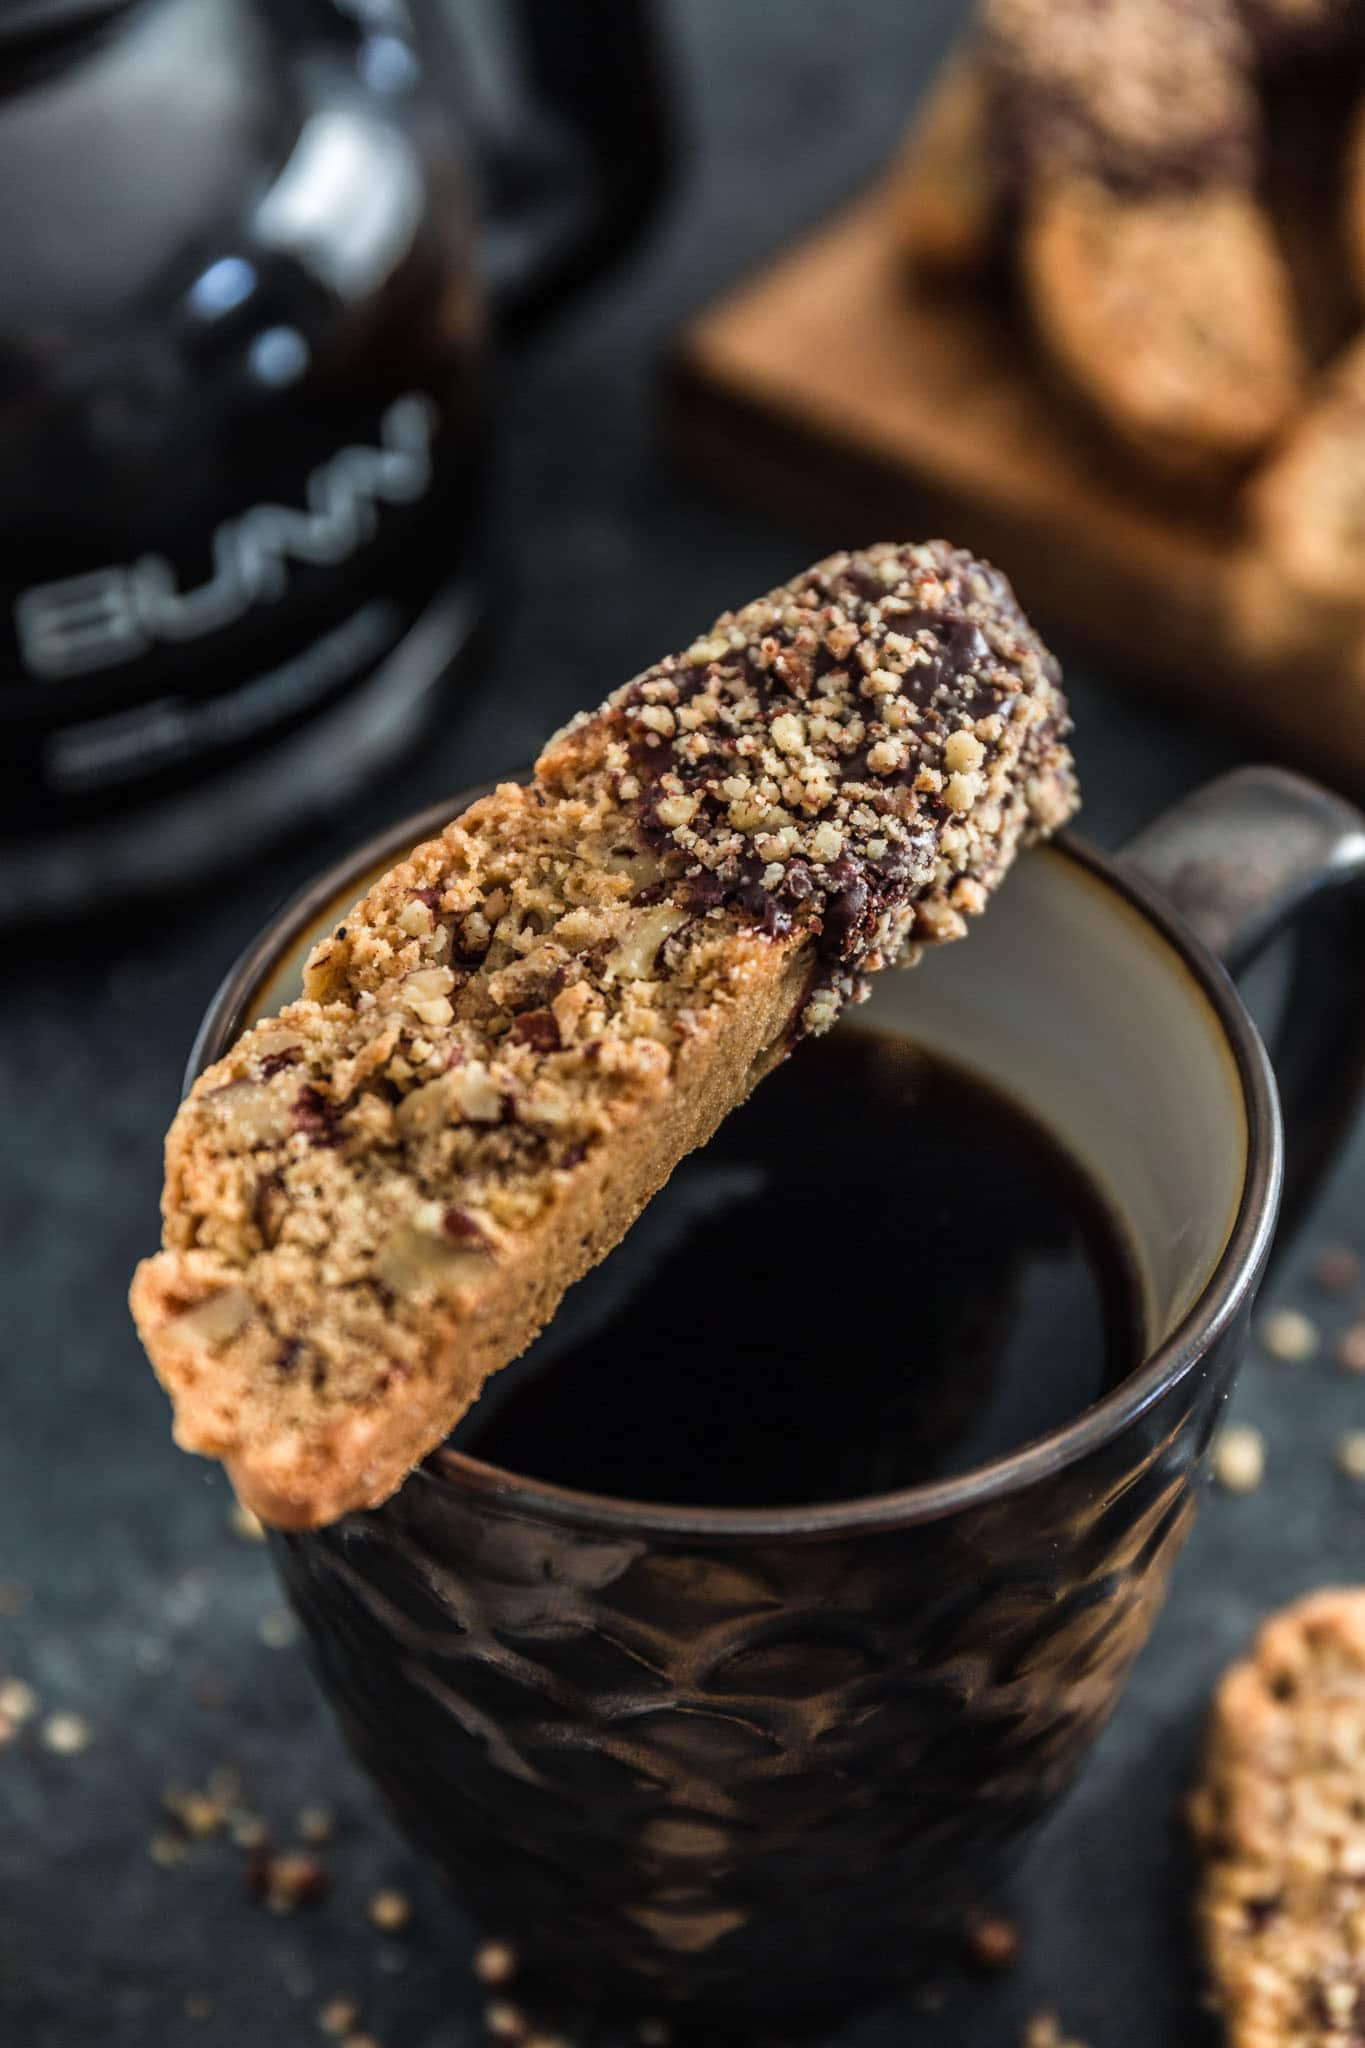 Chocolate Dipped Cinnamon Pecan Biscotti | www.oliviascuisine.com | Lighter than Italian biscotti, these Chocolate Dipped Cinnamon Pecan Biscotti are crisp, tender and filled with some of my favorite holiday noms: cinnamon, pecan and chocolate! Perfect to give out as holiday gifts or just to dunk into your coffee.